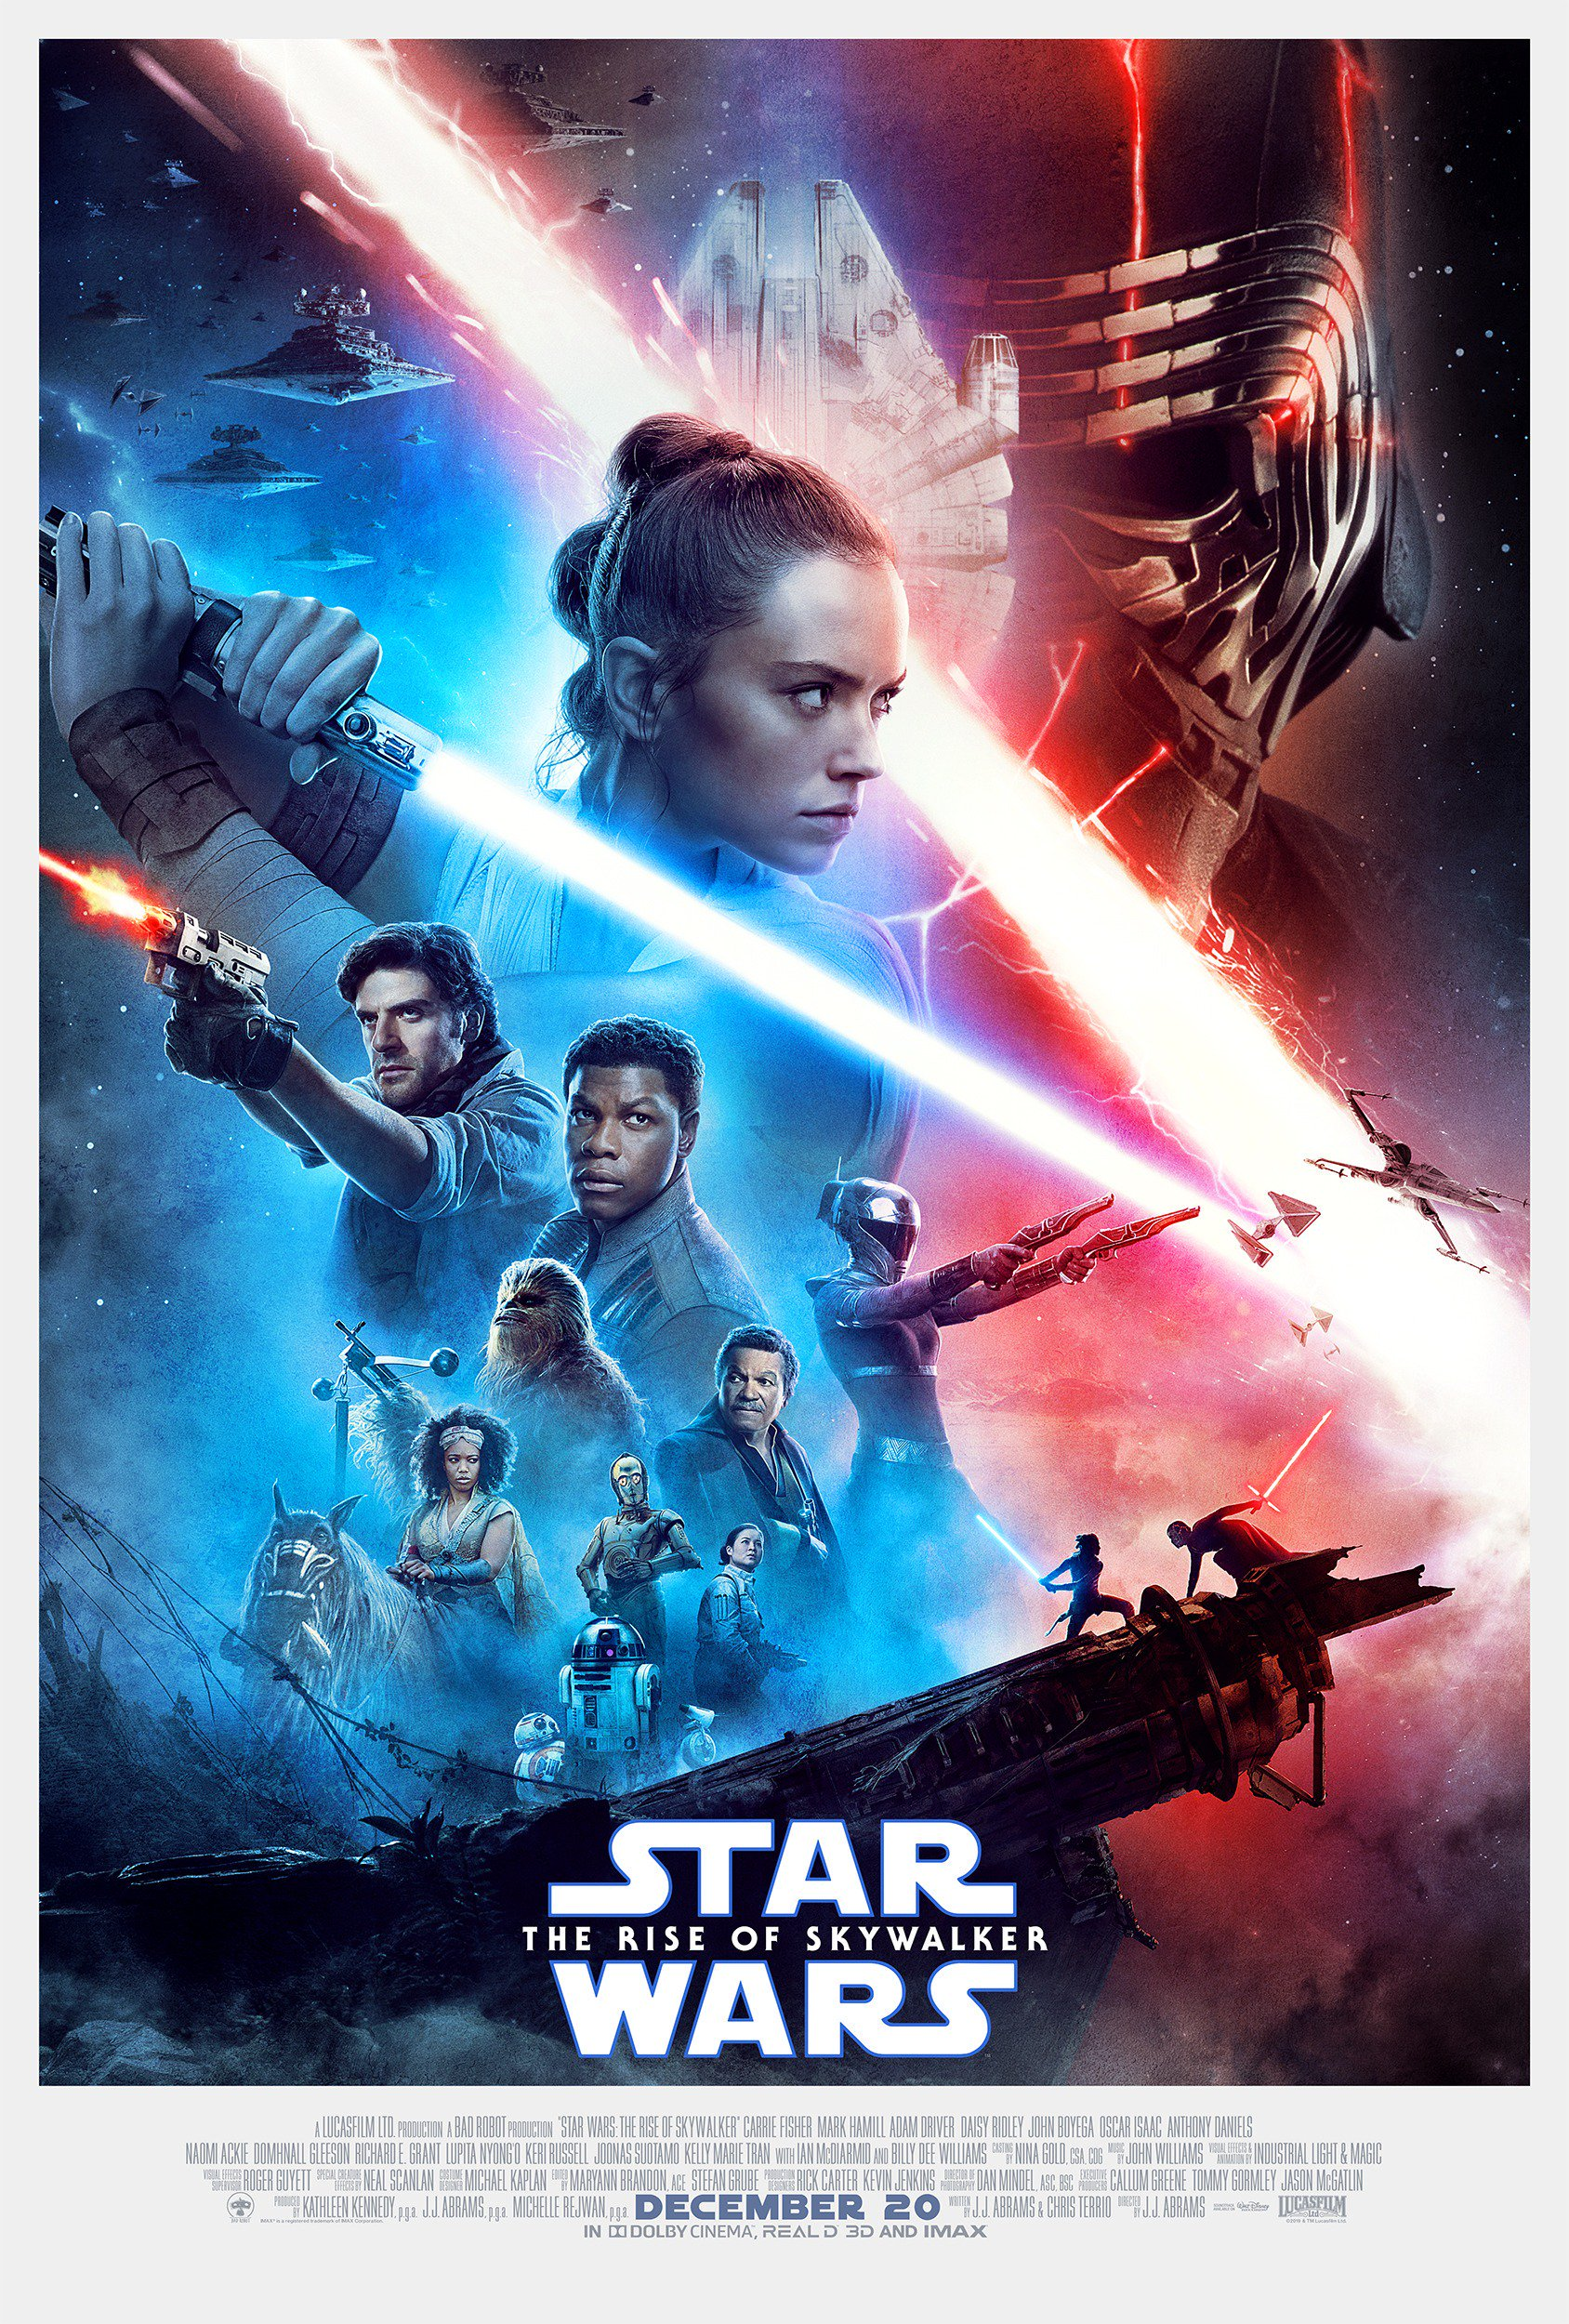 New Theatrical Poster Revealed For Star Wars The Rise Of Skywalker